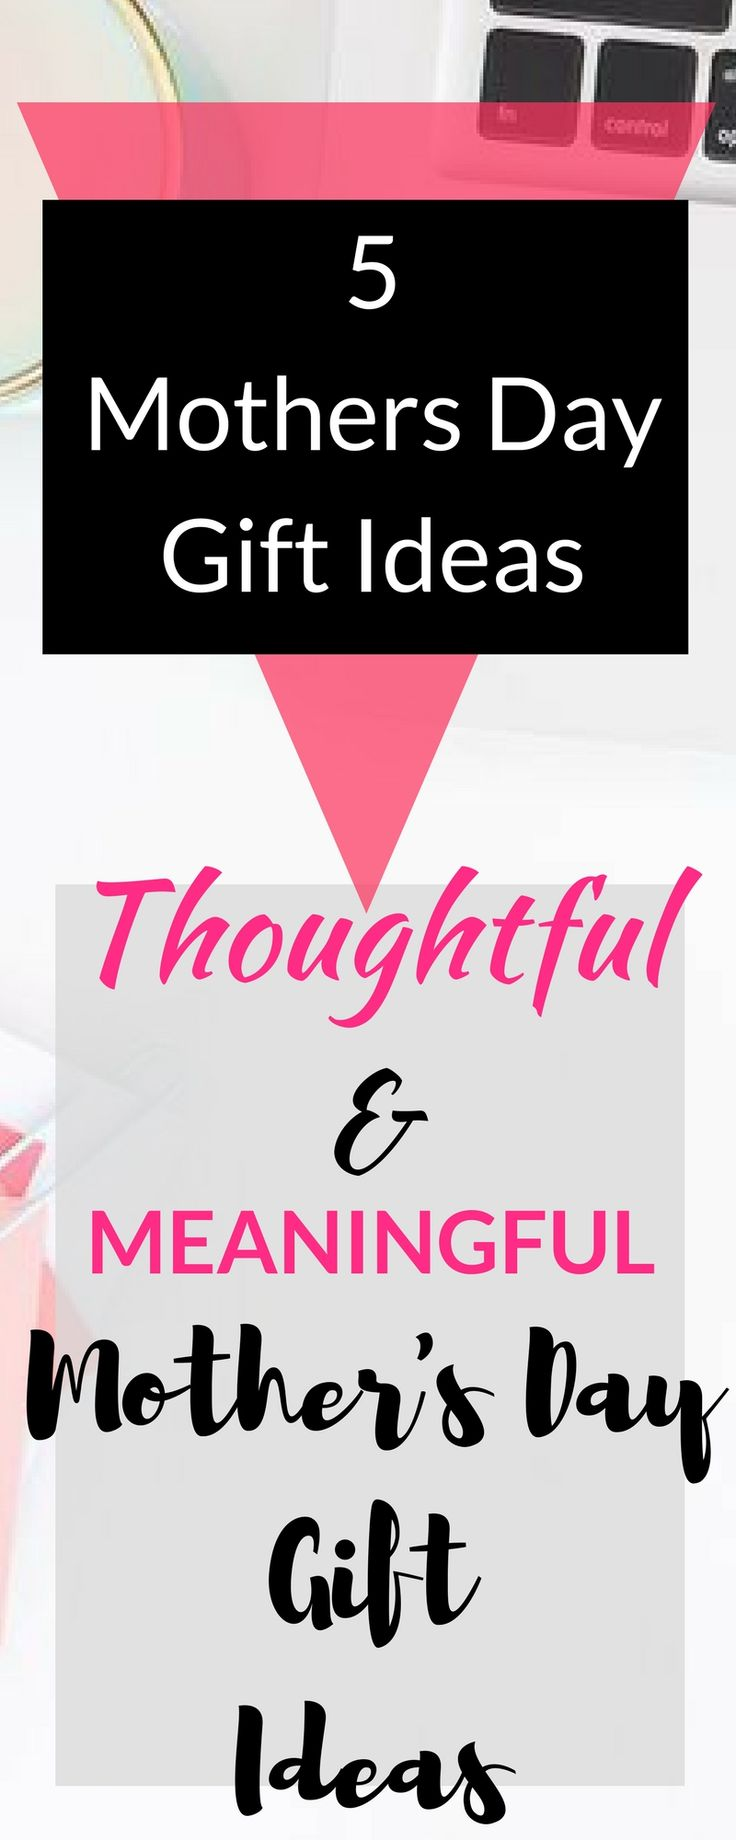 Perfect and thoughtful mother's day gift ideas. 5 gift ideas with special meaning behind them. #mothersday #mothersdaygift #mothersdaypresents #mothersdaydiy #mothersdaybrunch Mothers day ideas, mothers day gift from daughters, unique DIY mother's day gift.